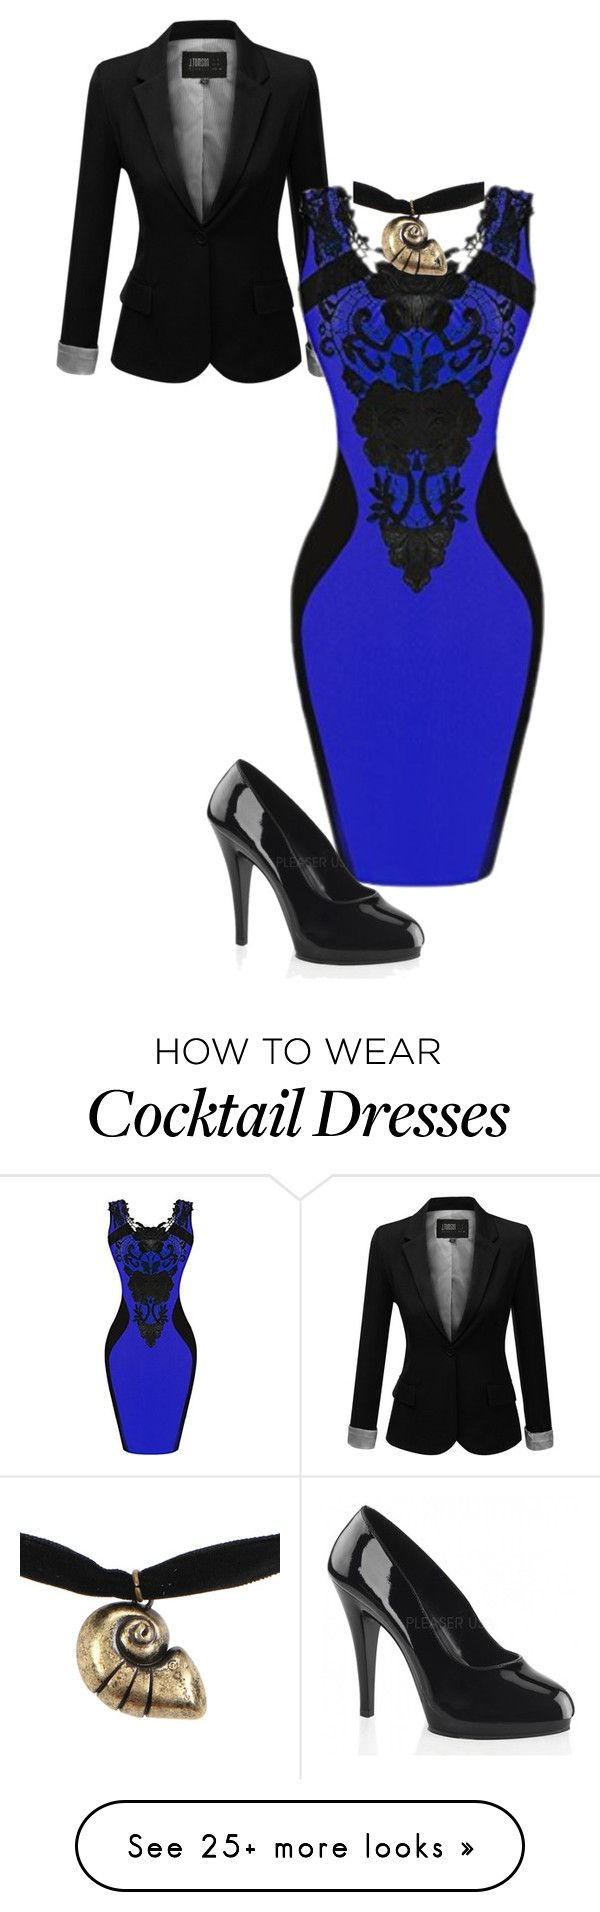 """simple style"" by julianne-lalonde on Polyvore featuring J.TOMSON, Disney and Fabulicious"